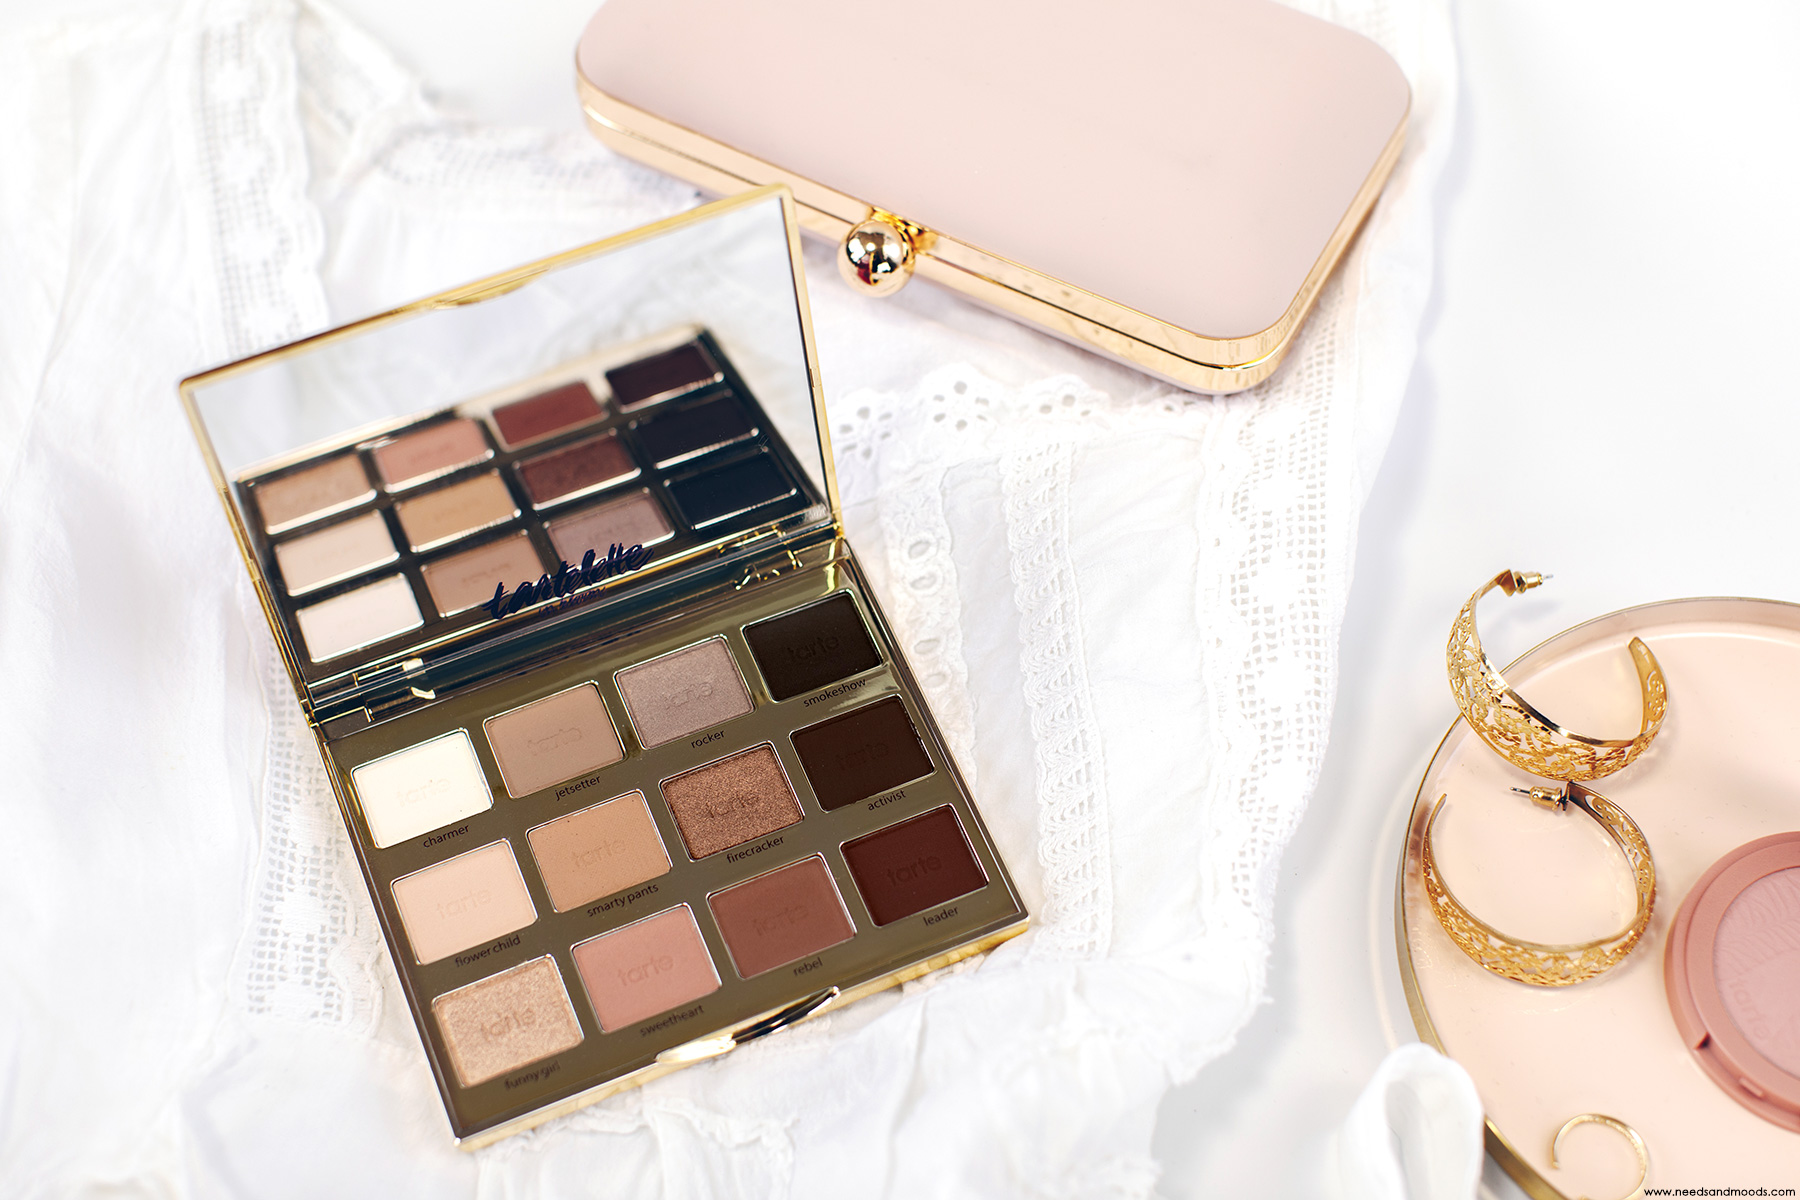 tartelette in bloom tarte avis